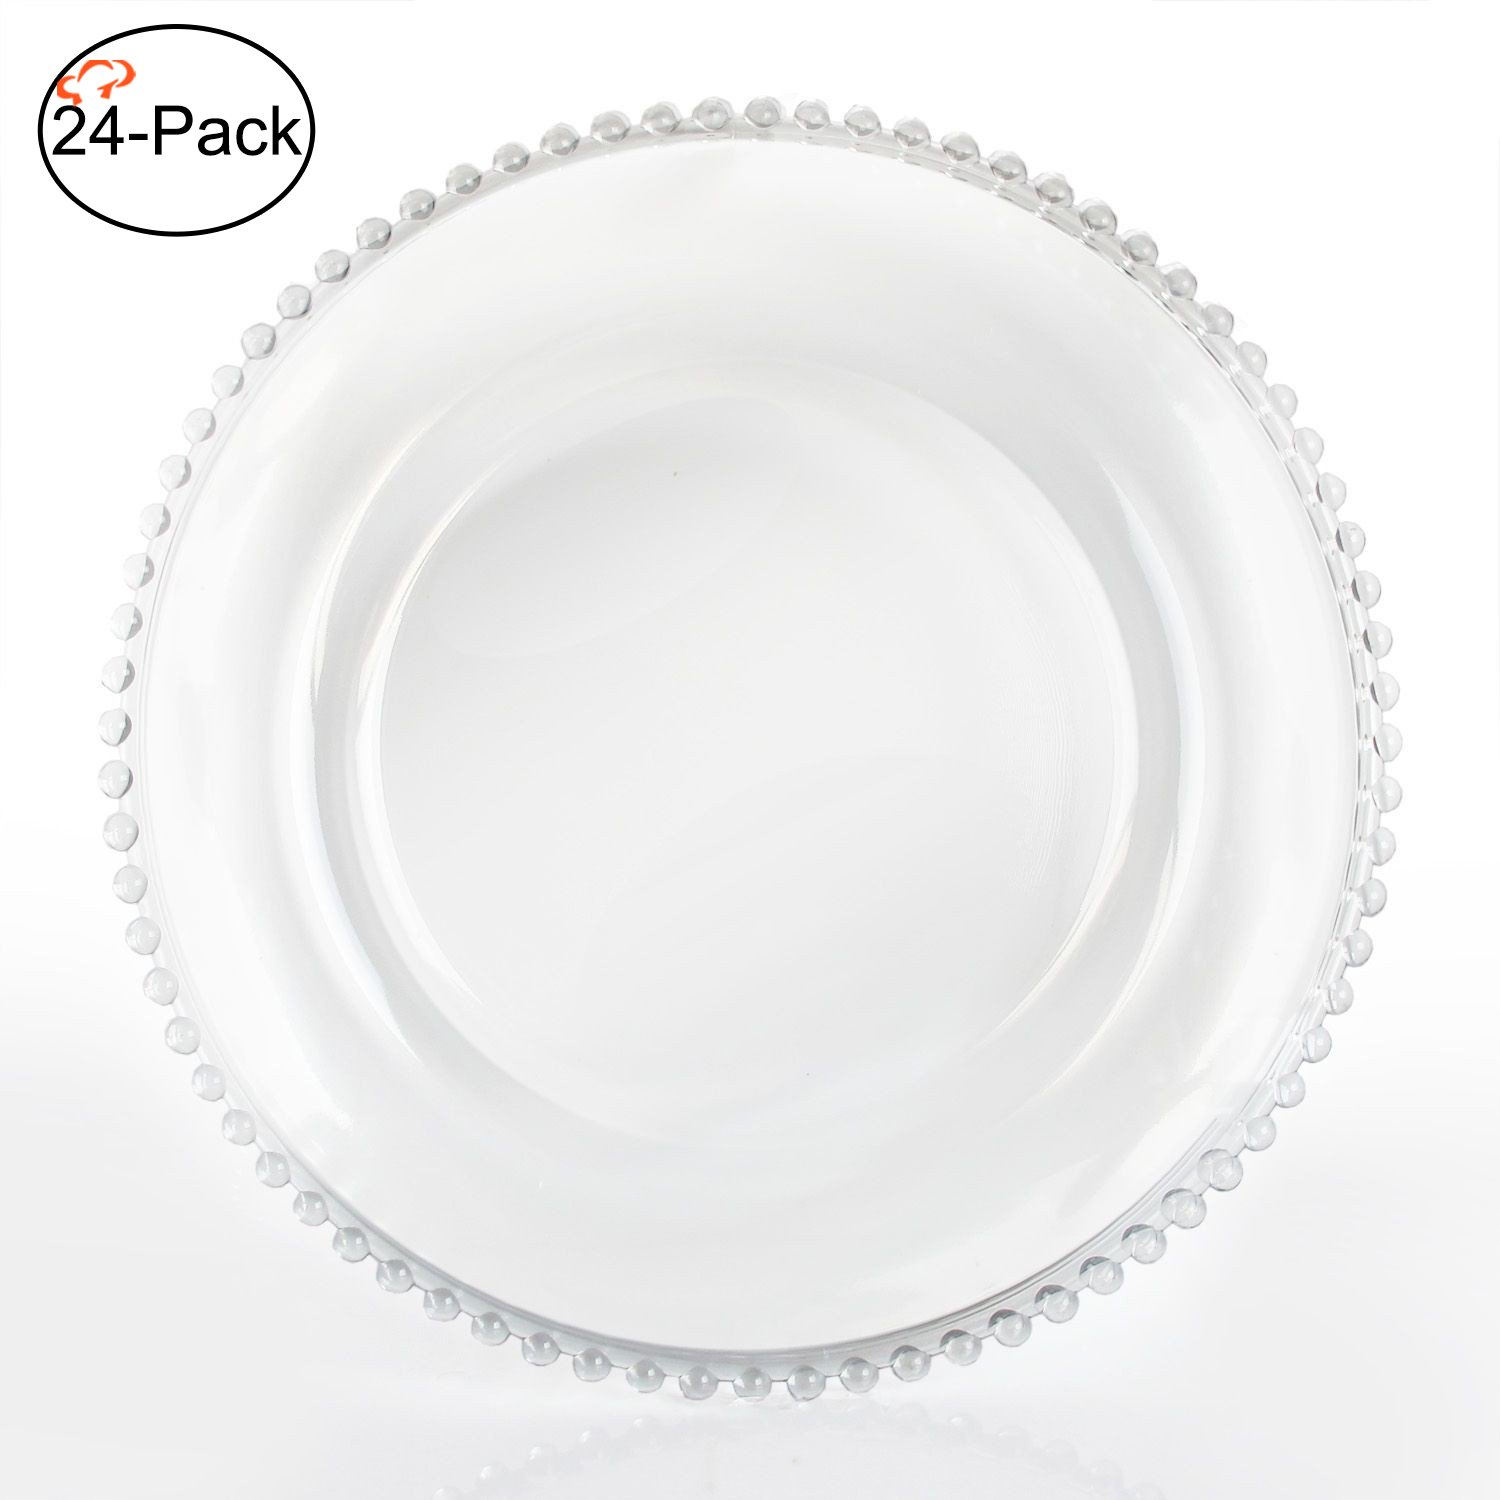 Tiger Chef 13-inch Clear Round Beaded Glass Charger Plates Set of 2,4,6, 12 or 24 Dinner Chargers (24-Pack)